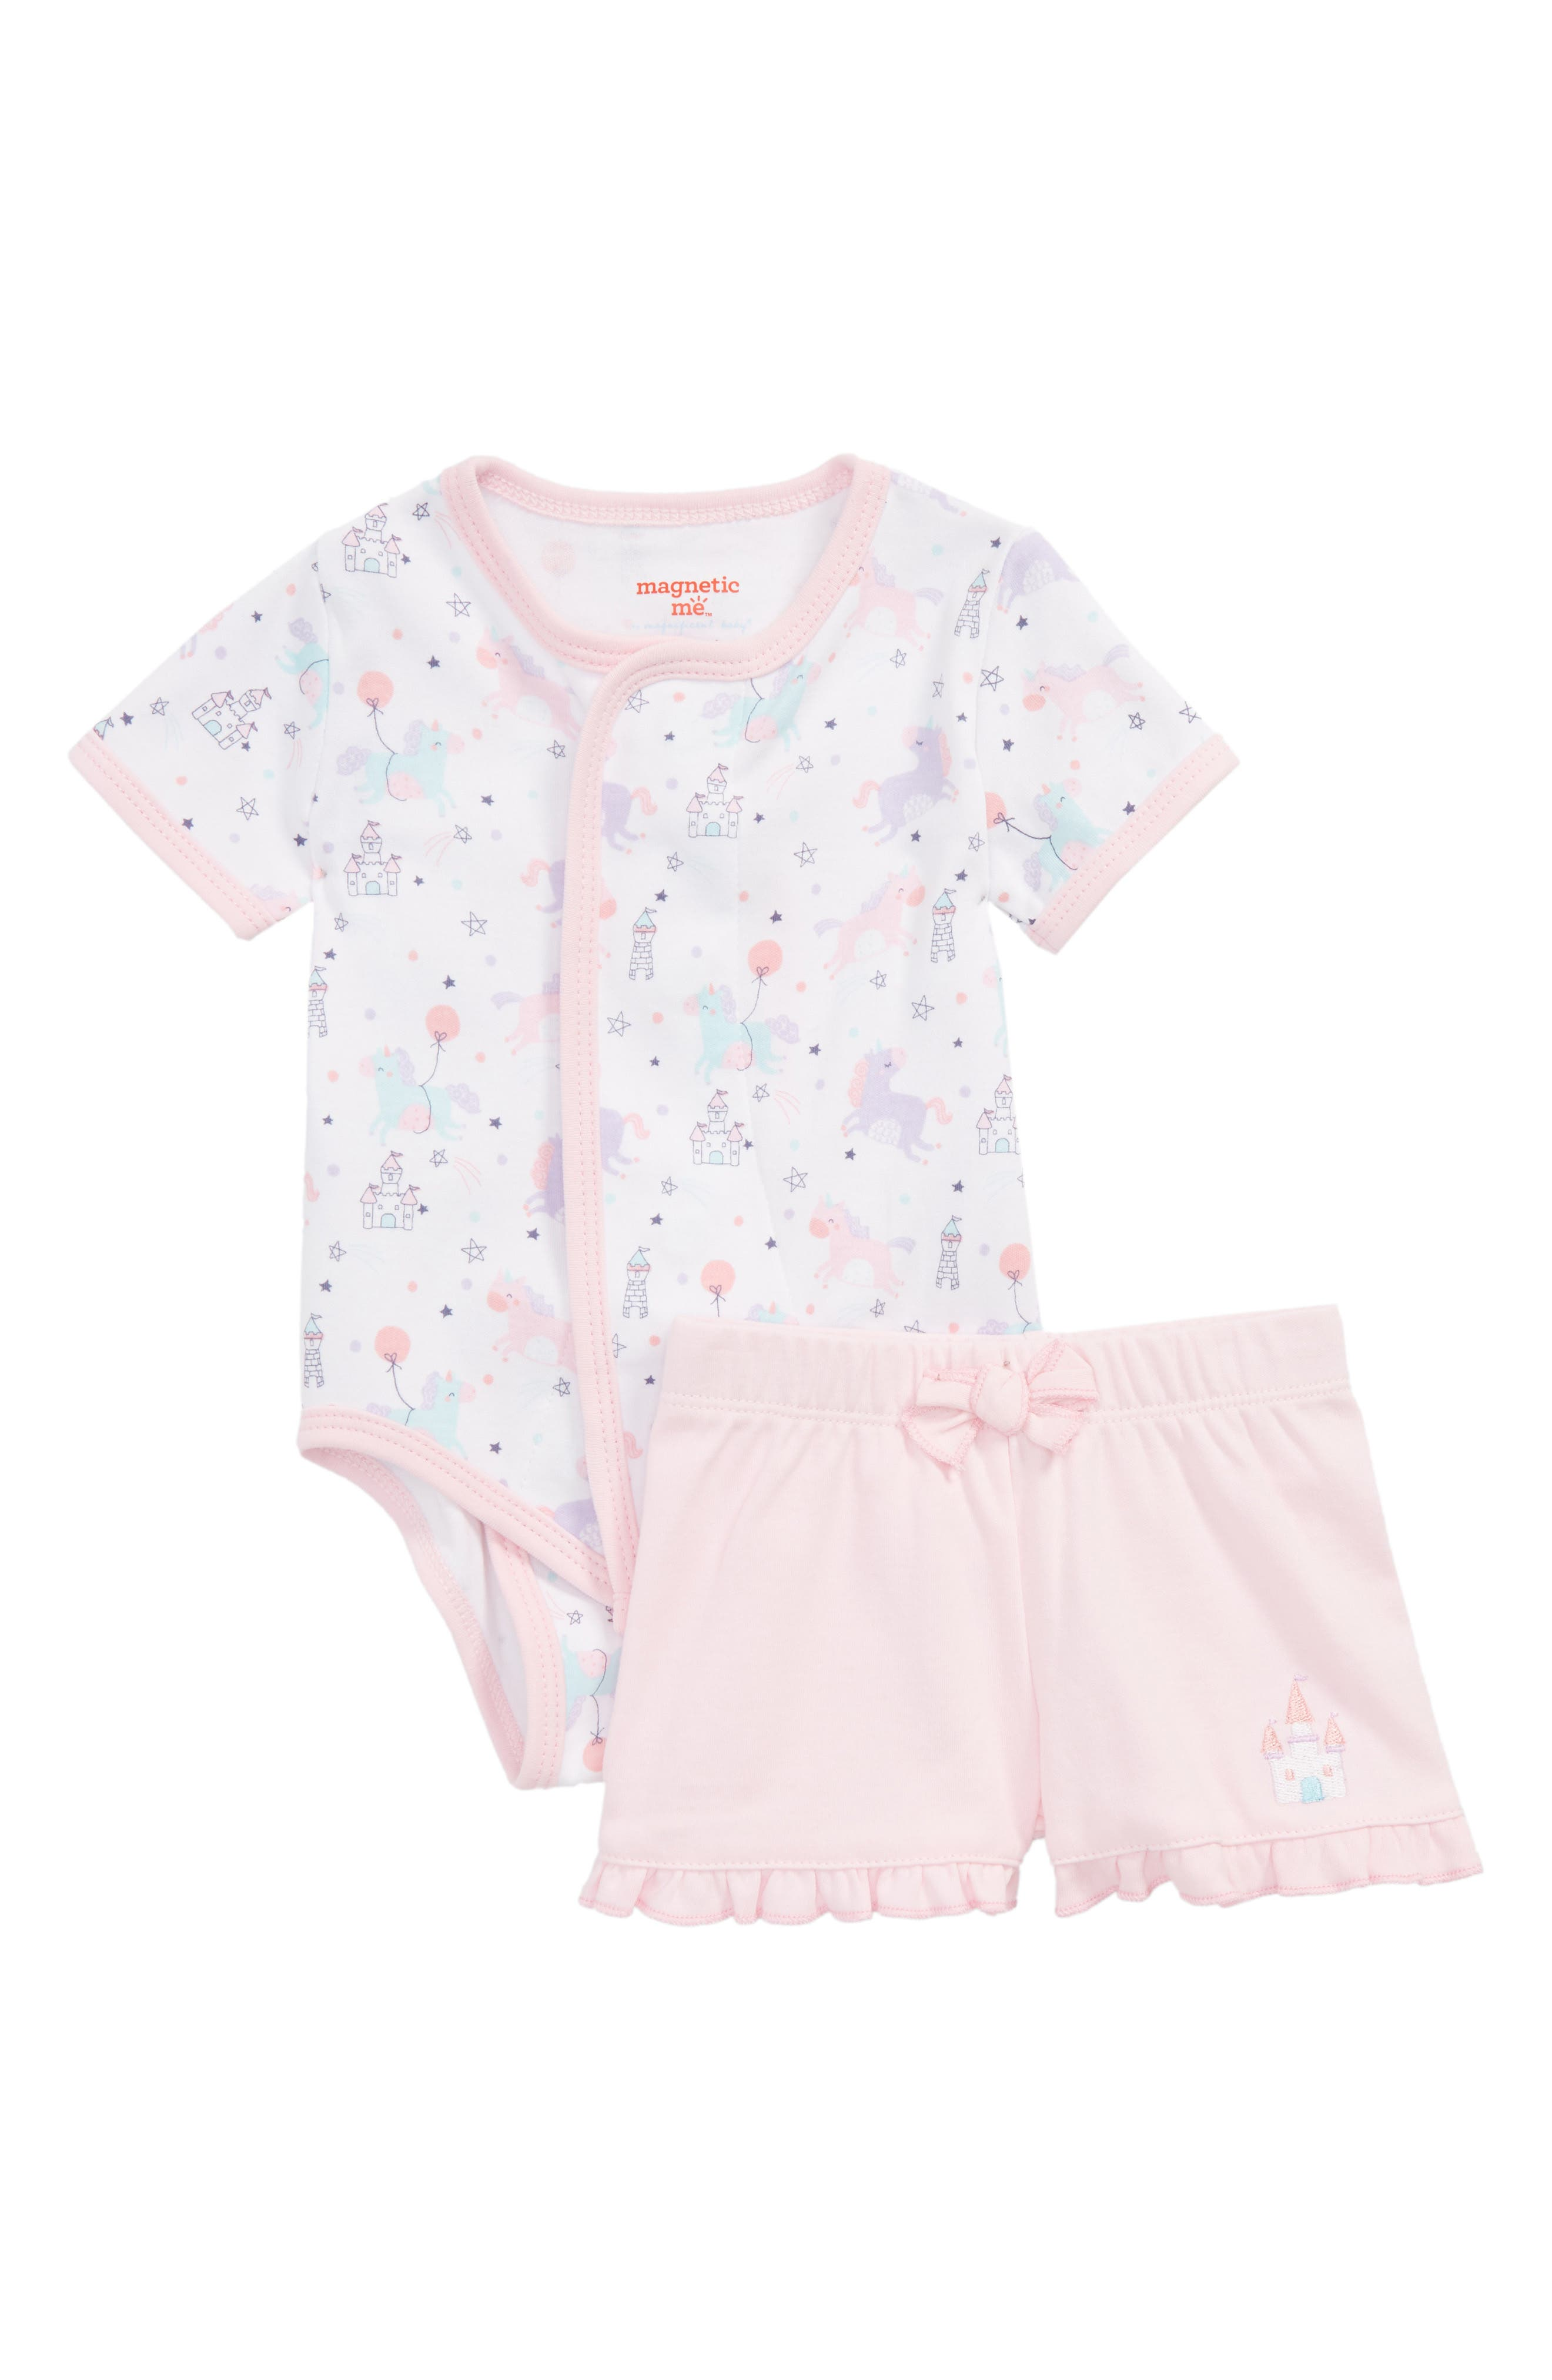 Once Upon a Time Bodysuit & Shorts Set,                             Main thumbnail 1, color,                             Pink